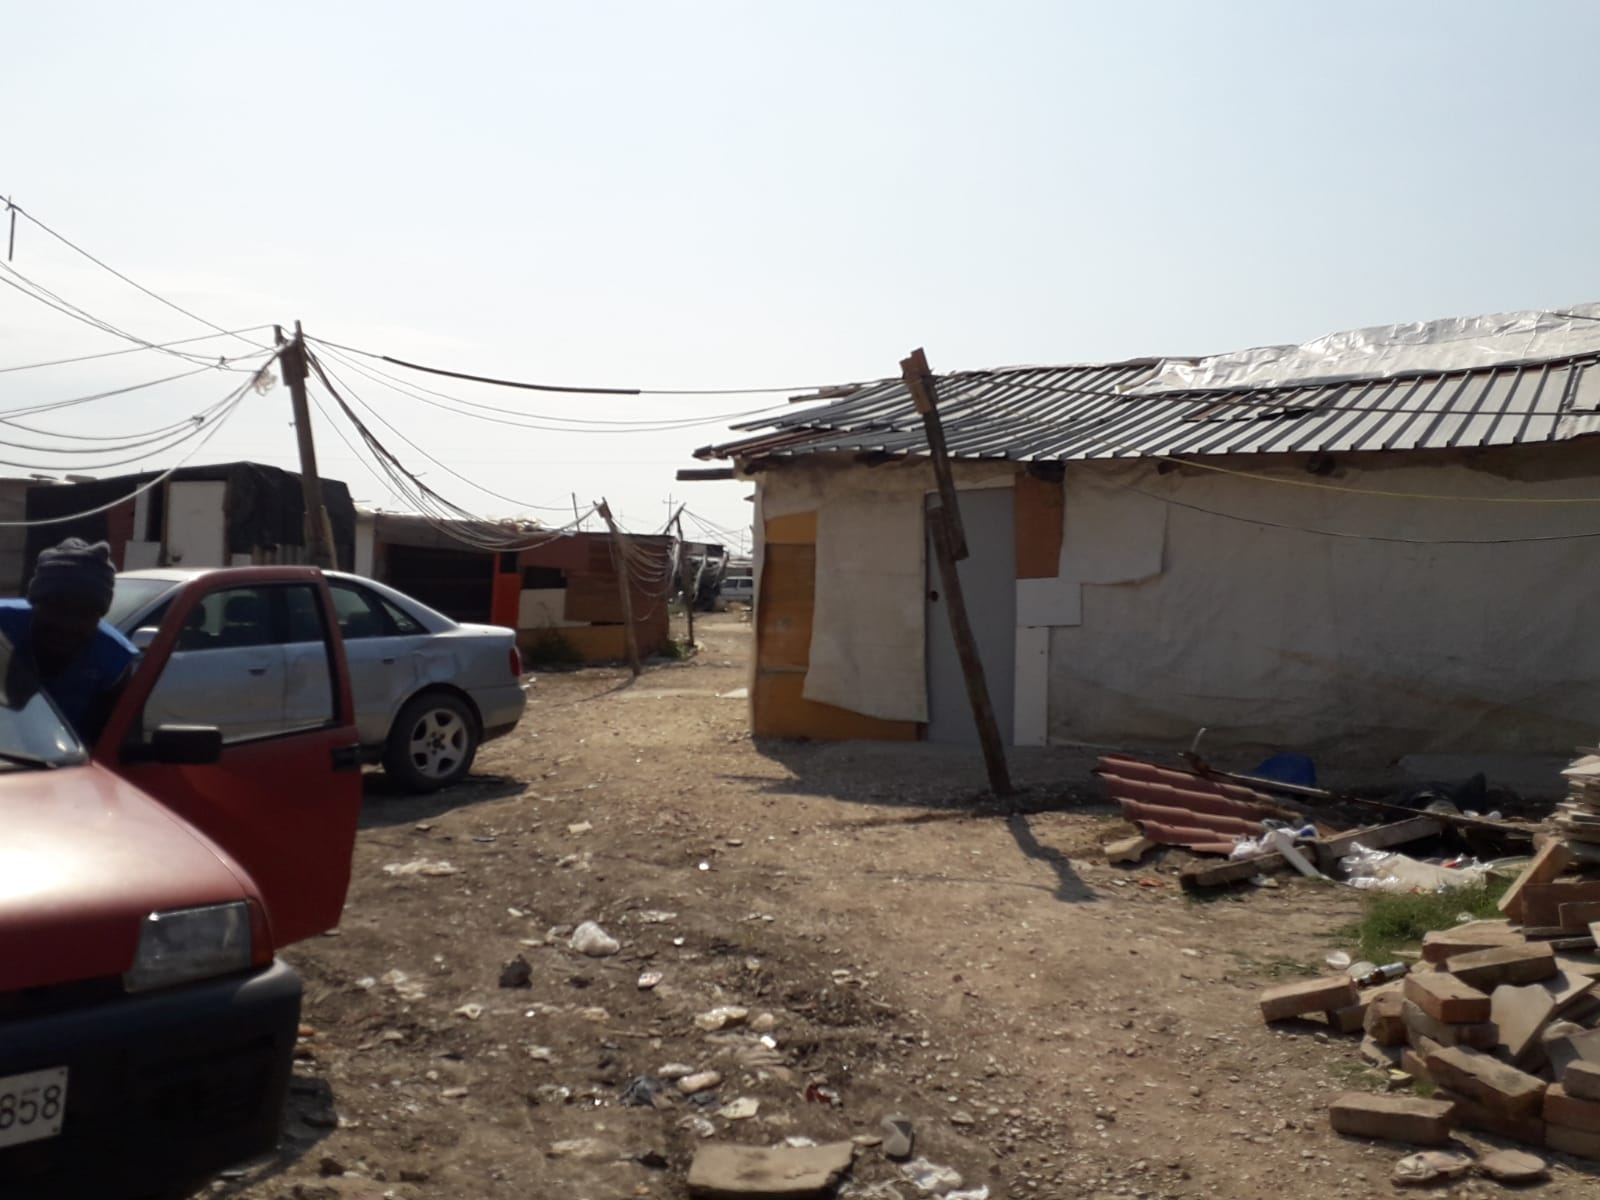 The shantytown near the Foggia housing camp where Alagie's friend was stabbed to death; July, 2018. © Pamela Kerpius